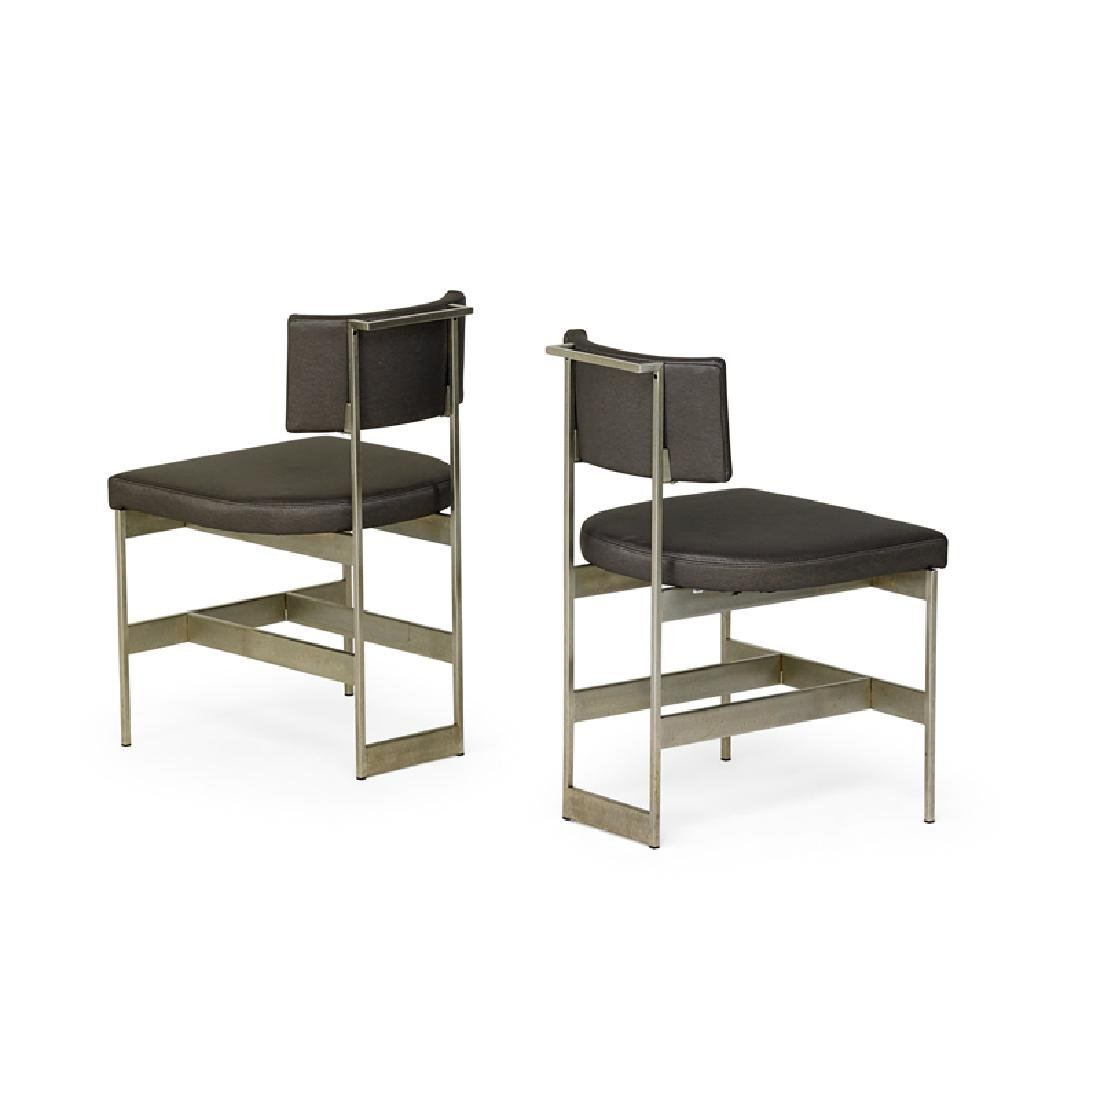 POWELL & BONNELL Two Alto side chairs - 2